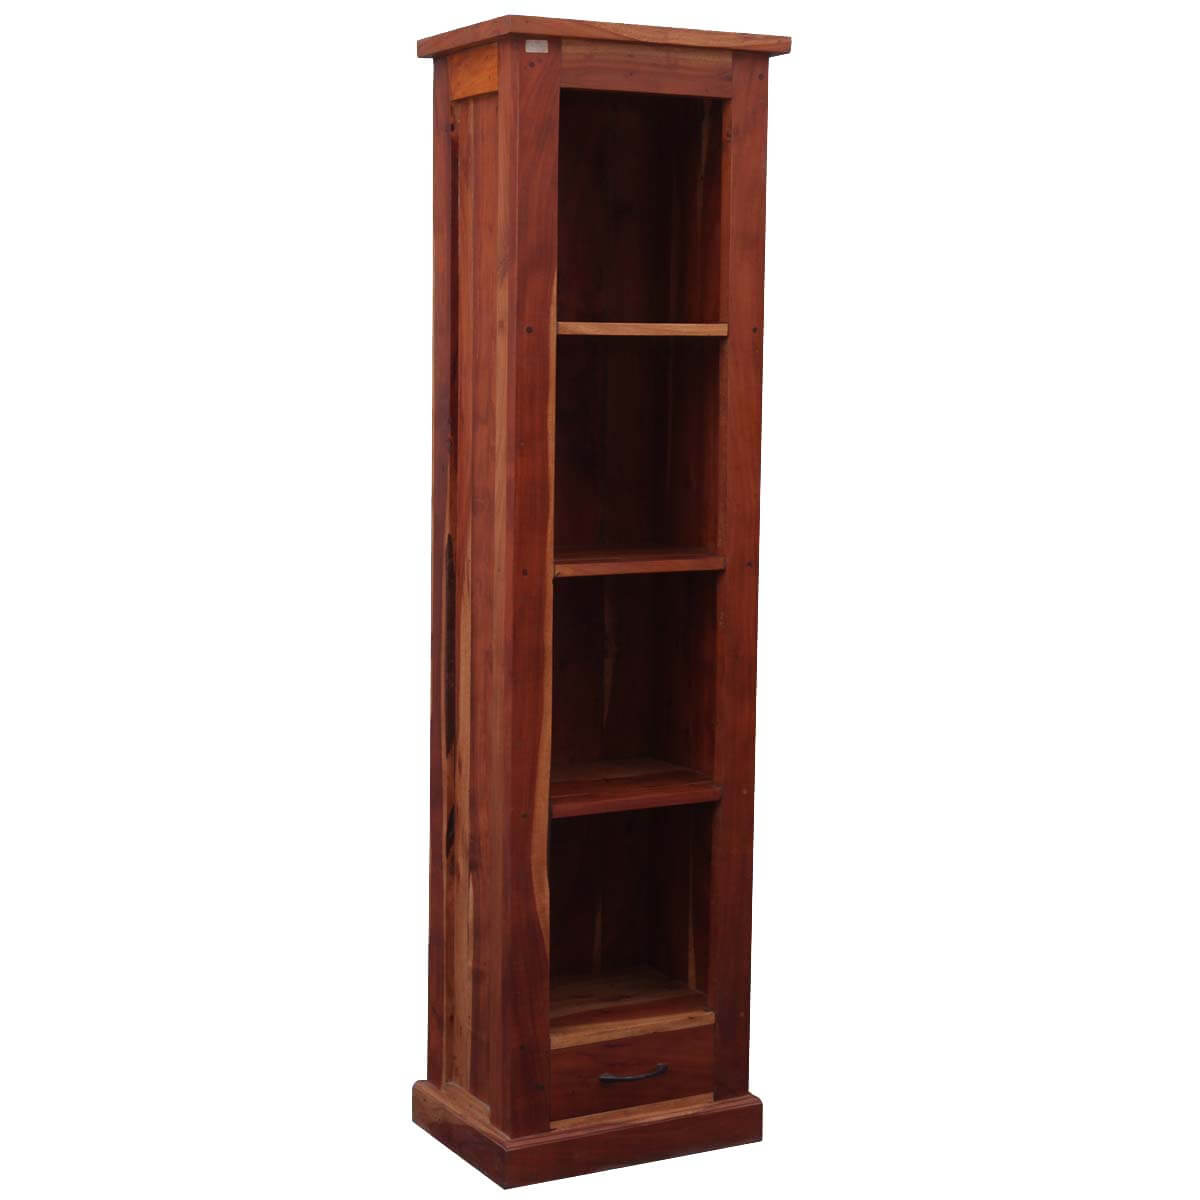 Palma 4 Open Shelf Rustic Solid Wood Tall Narrow Bookcase With Drawers